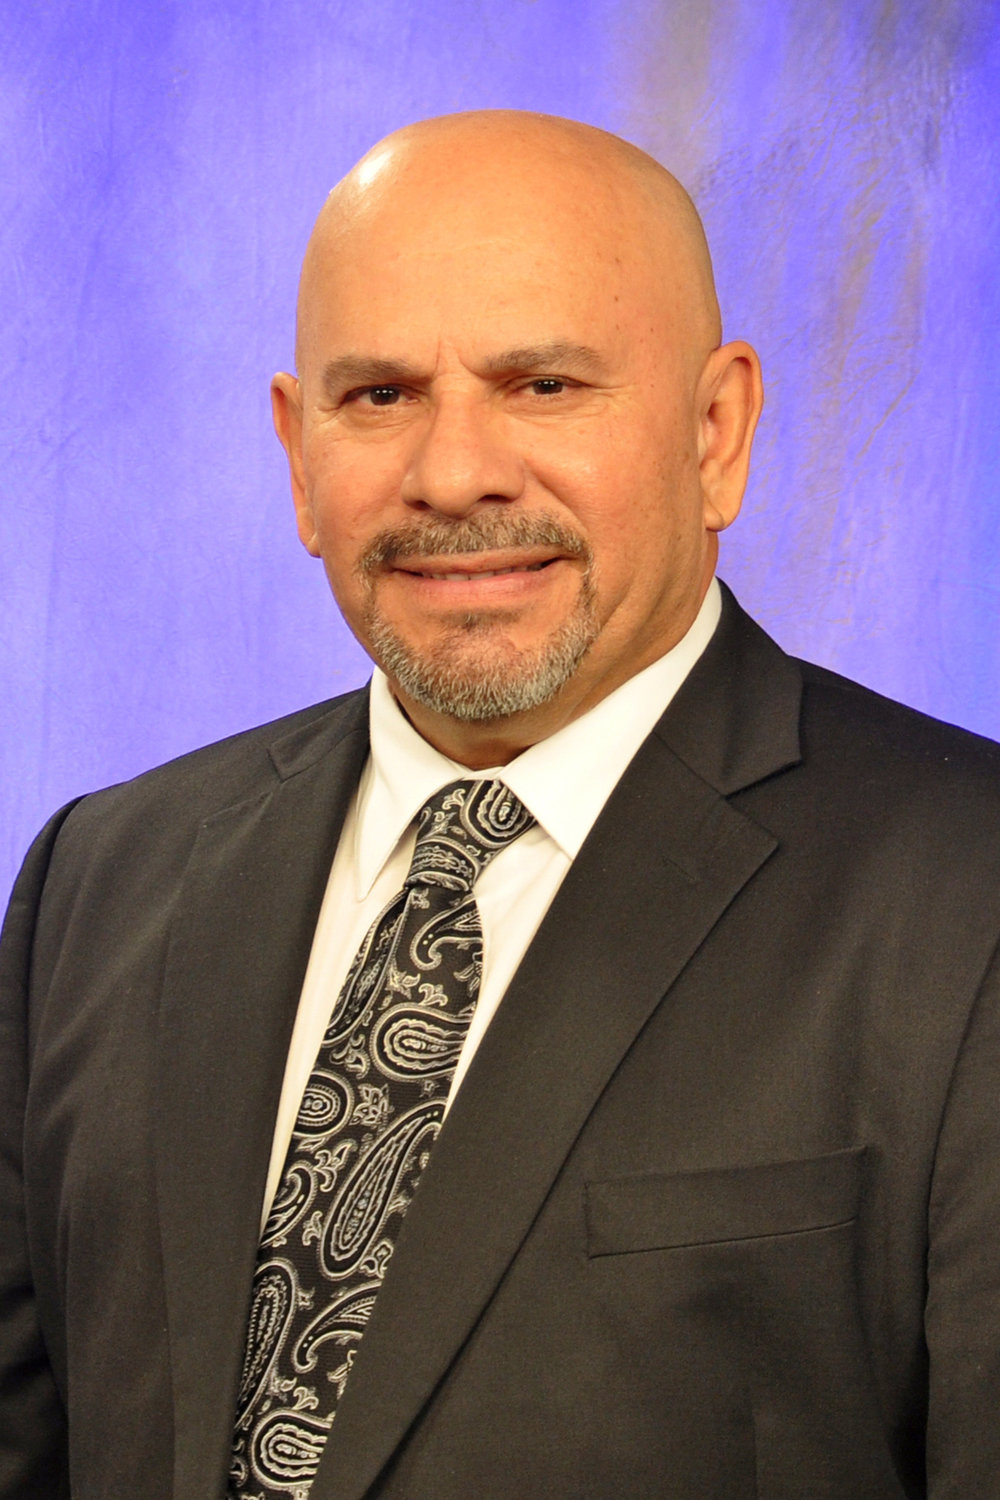 Carlos Morán    Director   Hispanic Ministries  Carlos S. Morán is currently under appointment as Director of Hispanic Ministries of Church of God. He has received a Doctorate Degree in higher education from Nova Southeastern University in Fort Lauderdale, Florida. He obtained his Master's Degree in Religious Studies from the Church of God Theological Seminary, and his Bachelor of Arts Degree from West Coast Bible College.  While previously under appointment by Church of God World Missions, he served as a missionary teacher at the Mexican Bible Seminary in Hermosillo, Sonora, Mexico and at the Pentecostal Bible School in Puerto Rico. He has also served in higher education in the United States at West Coast Christian College, California State University in Fresno, and as Director of the Hispanic Office for the Western School of Christian Ministry.  Dr. Morán was the founding State Administrative Bishop of the Northwestern Spanish Region in Fresno, California. He has served as Director of Hispanic Ministries and Editorial Evangélica and on various boards and councils in the Church of God. Dr. Morán also serves in other committees and organizations, such as the National Hispanic Christian Leadership Conference, Christian Churches Together, and the Tennessee Rehabilitation Center.  Carlos S. is married to Pérsida (Persi) Morán and they have two children, Carlos S. Jr. and Carina Lissette. Carina L. is married to Dominic Patrick and they have one son, Levi Patrick.